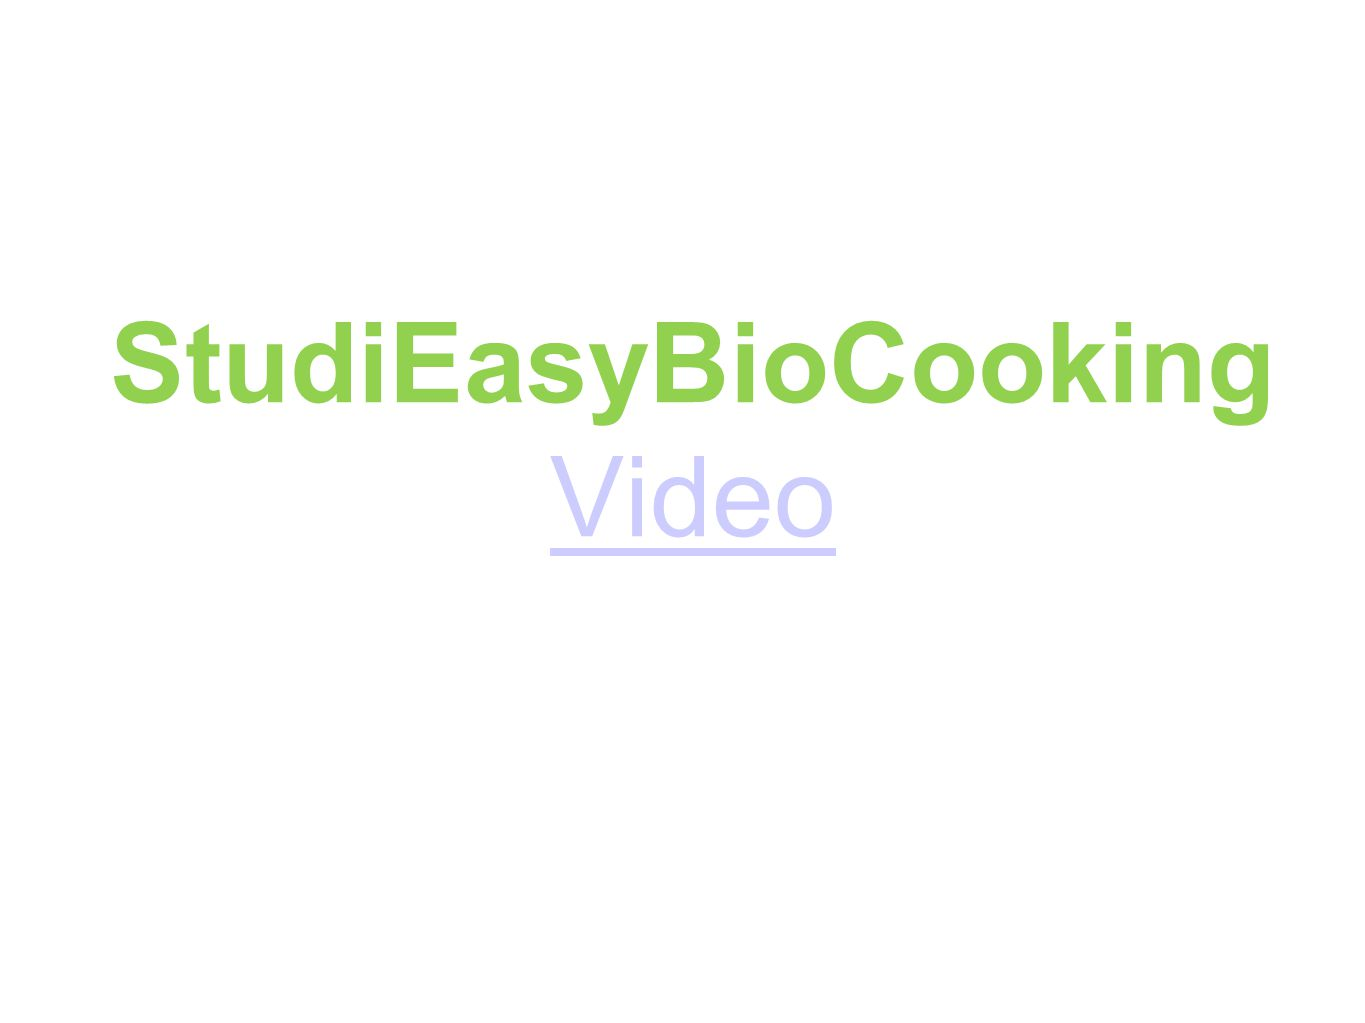 StudiEasyBioCooking Video Video